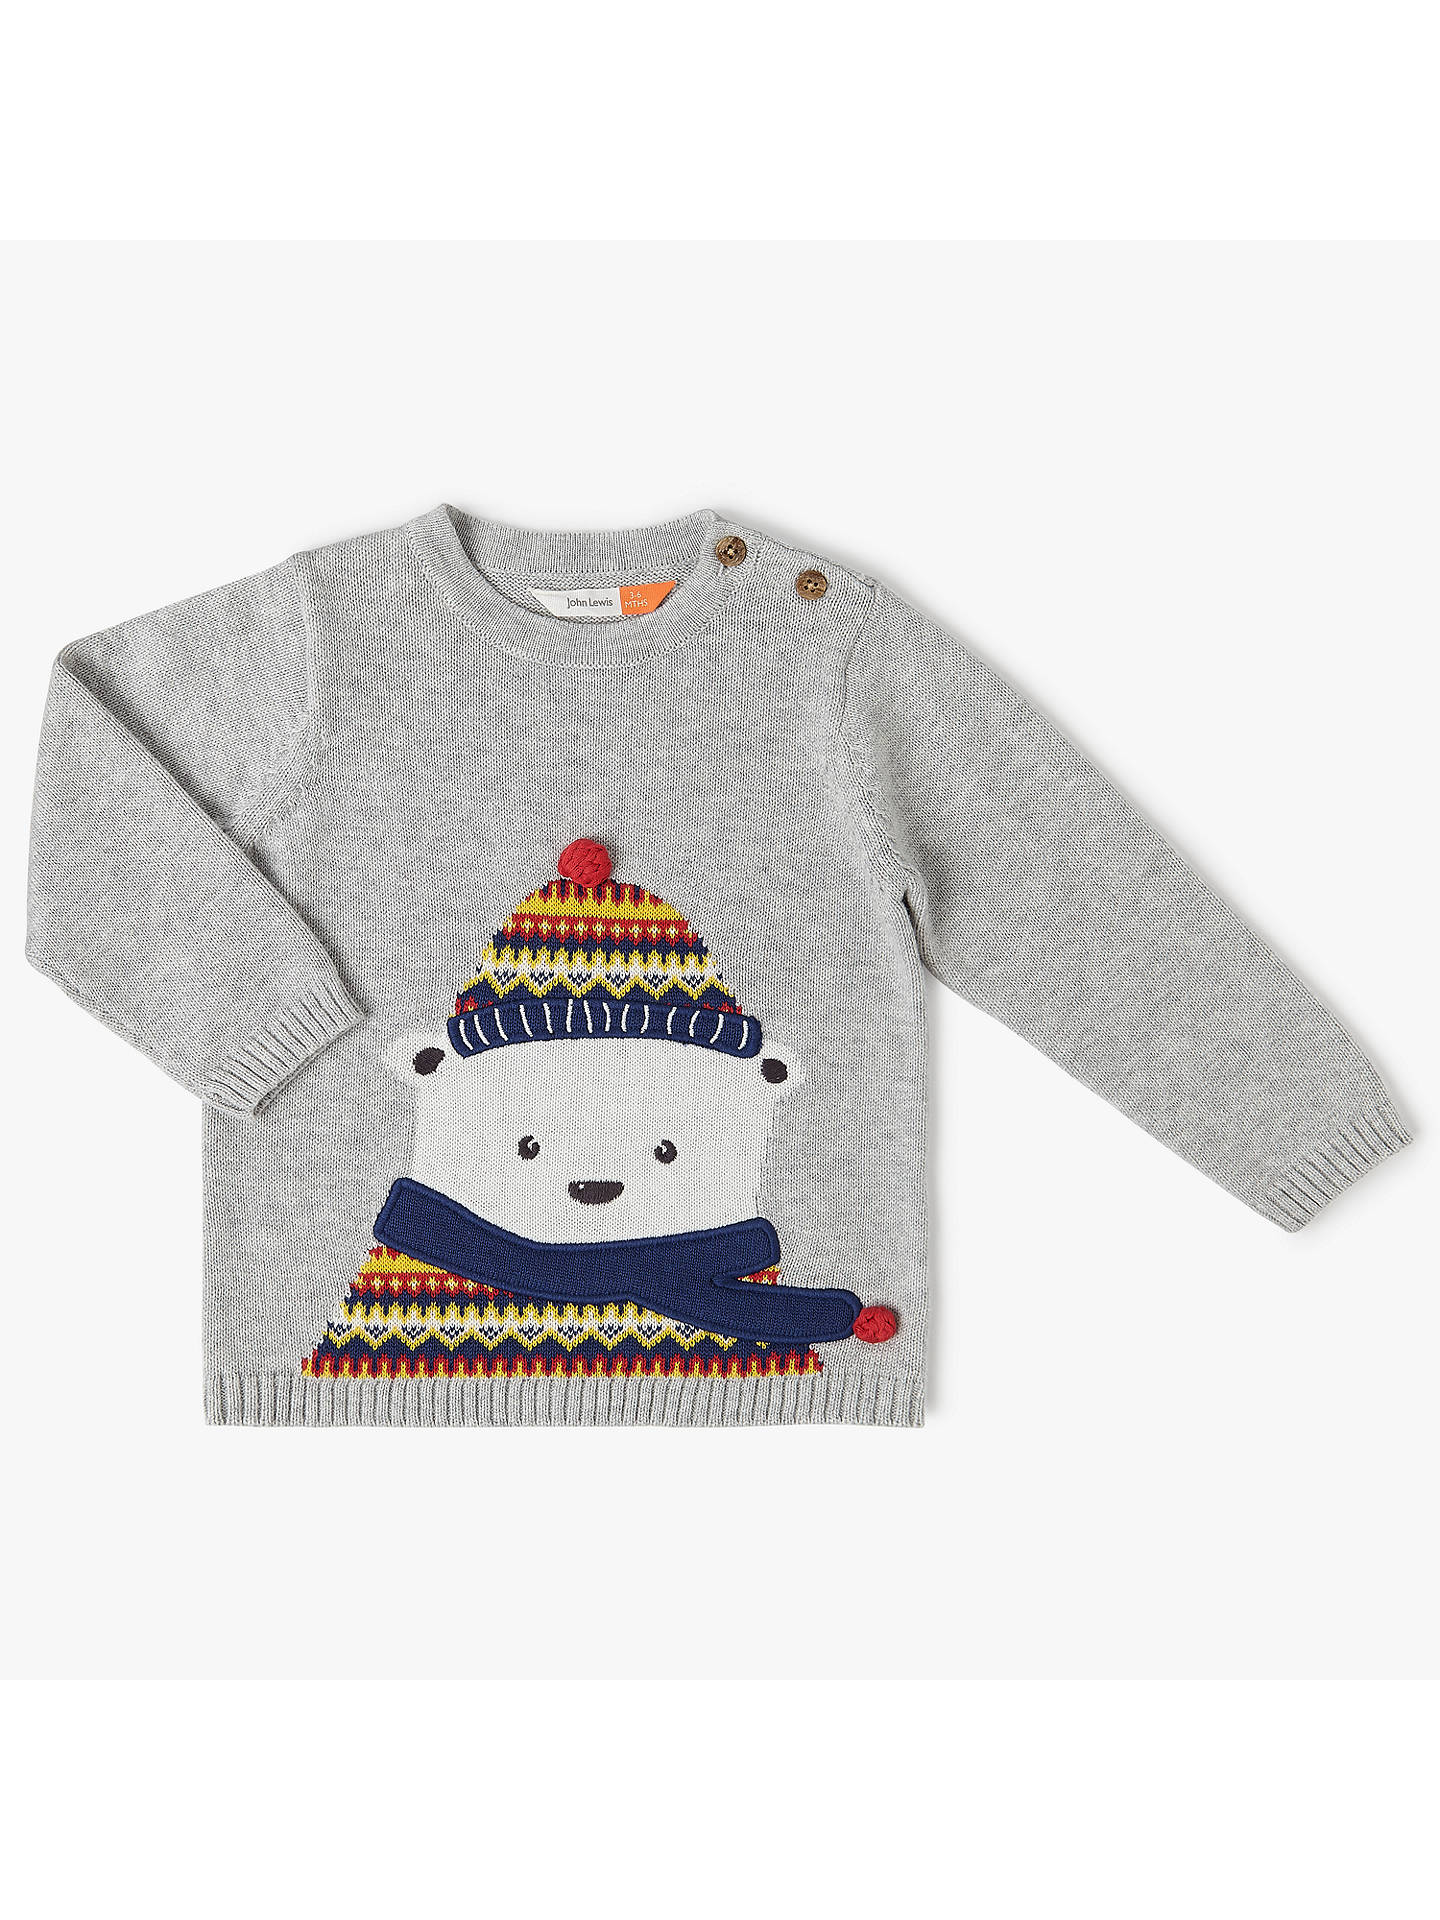 BuyJohn Lewis Baby Christmas Polar Bear Jumper, Grey, 0-3 months Online at johnlewis.com